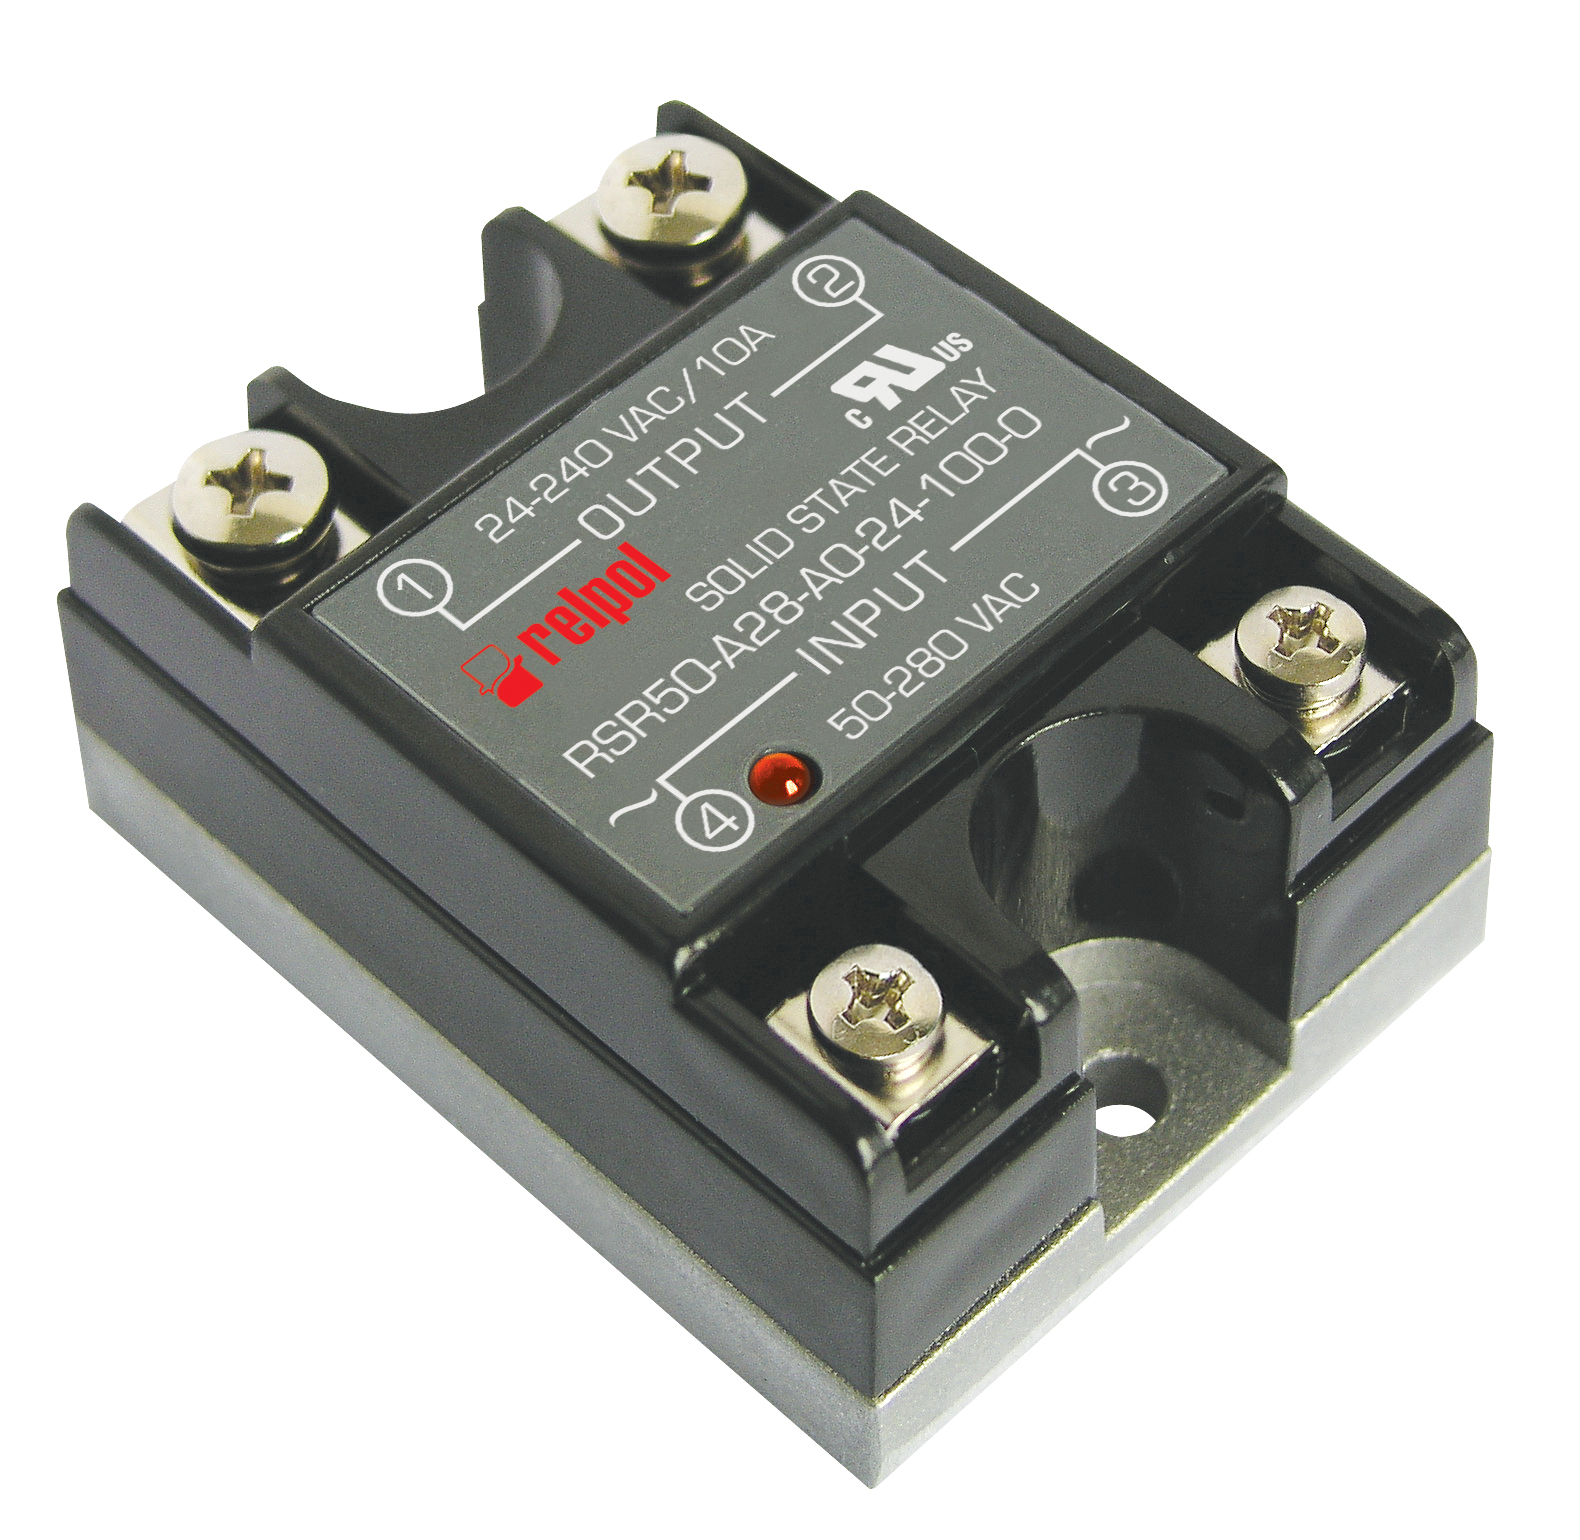 Rsr50 solid state relays for industrial automation relpol sa sciox Gallery